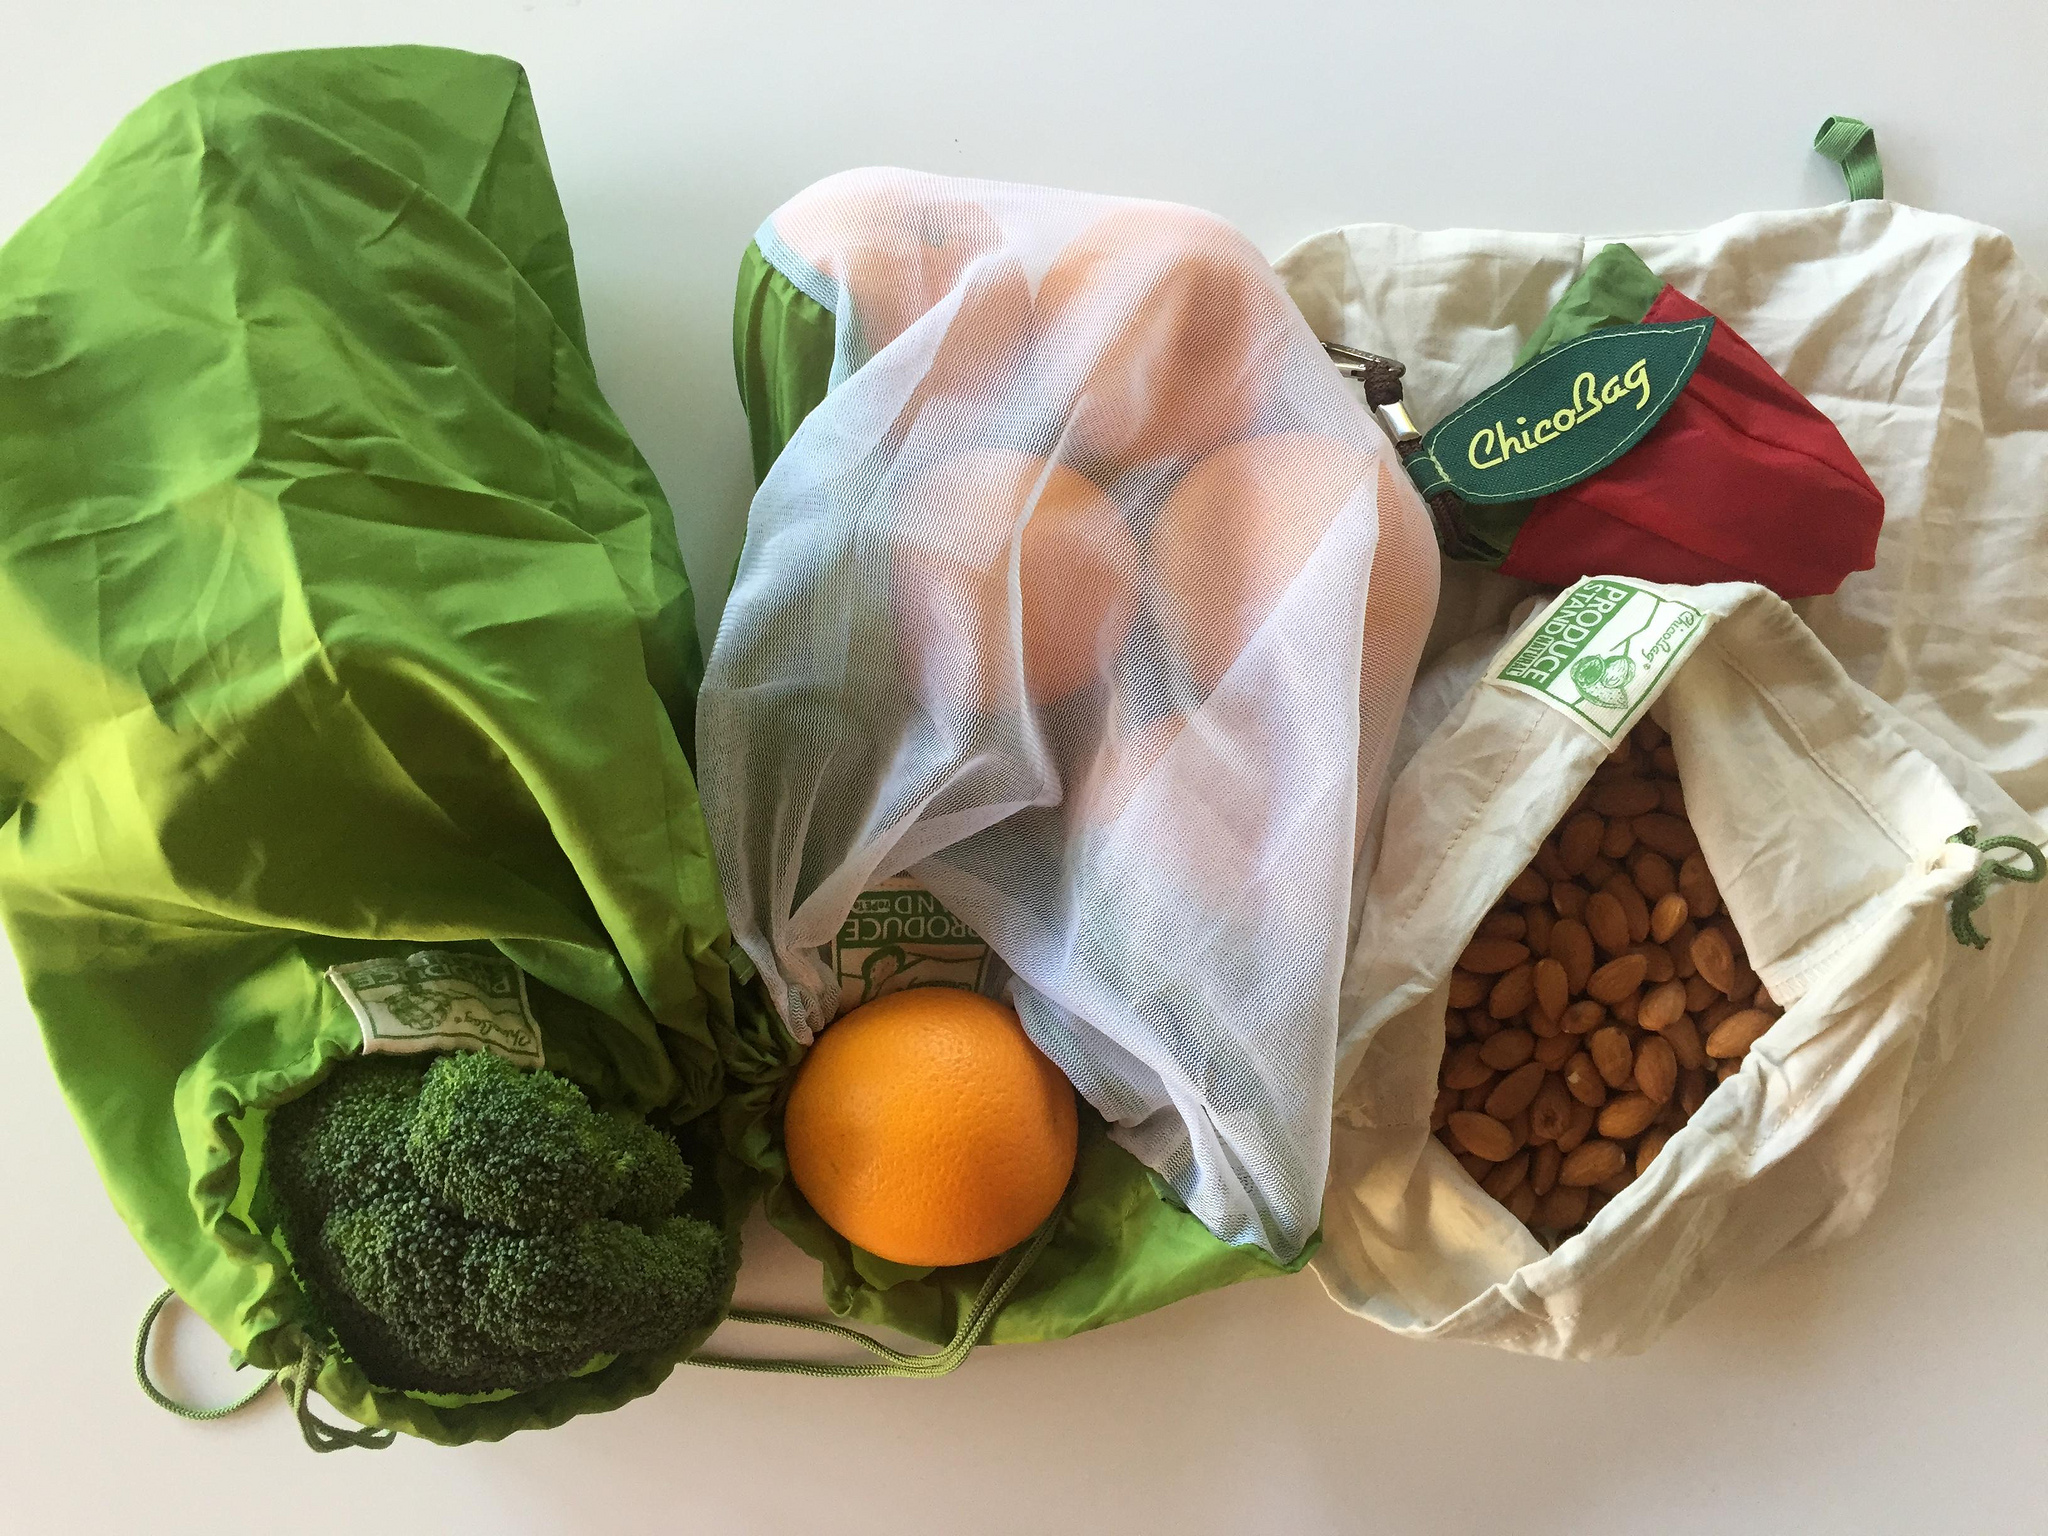 Reusable bags for all your grocery needs.